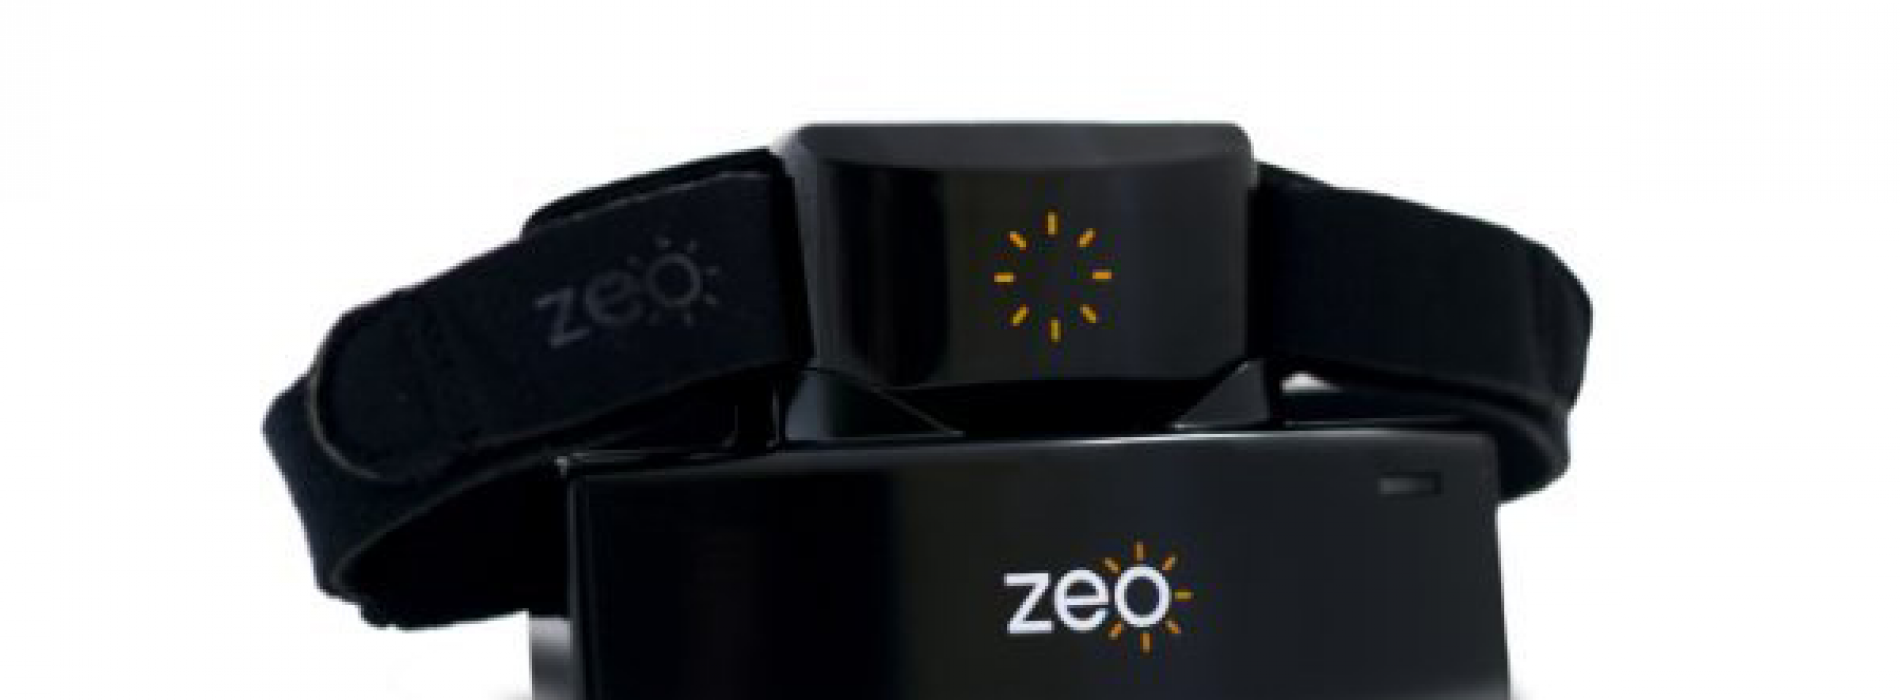 Zeo Sleep Manager: Review